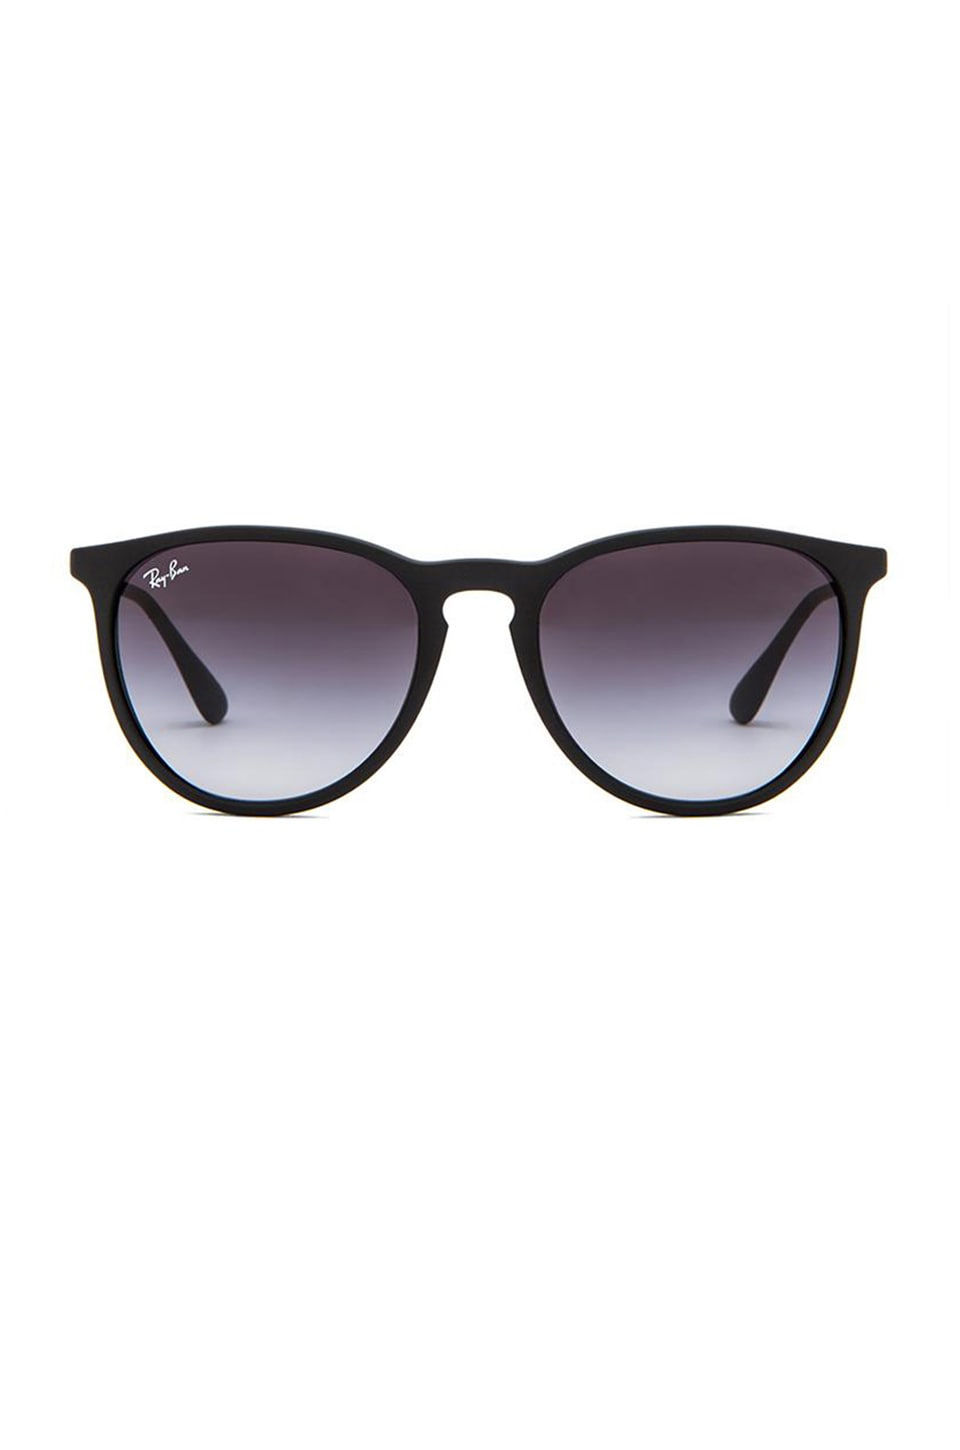 Ray-Ban Erika in Black